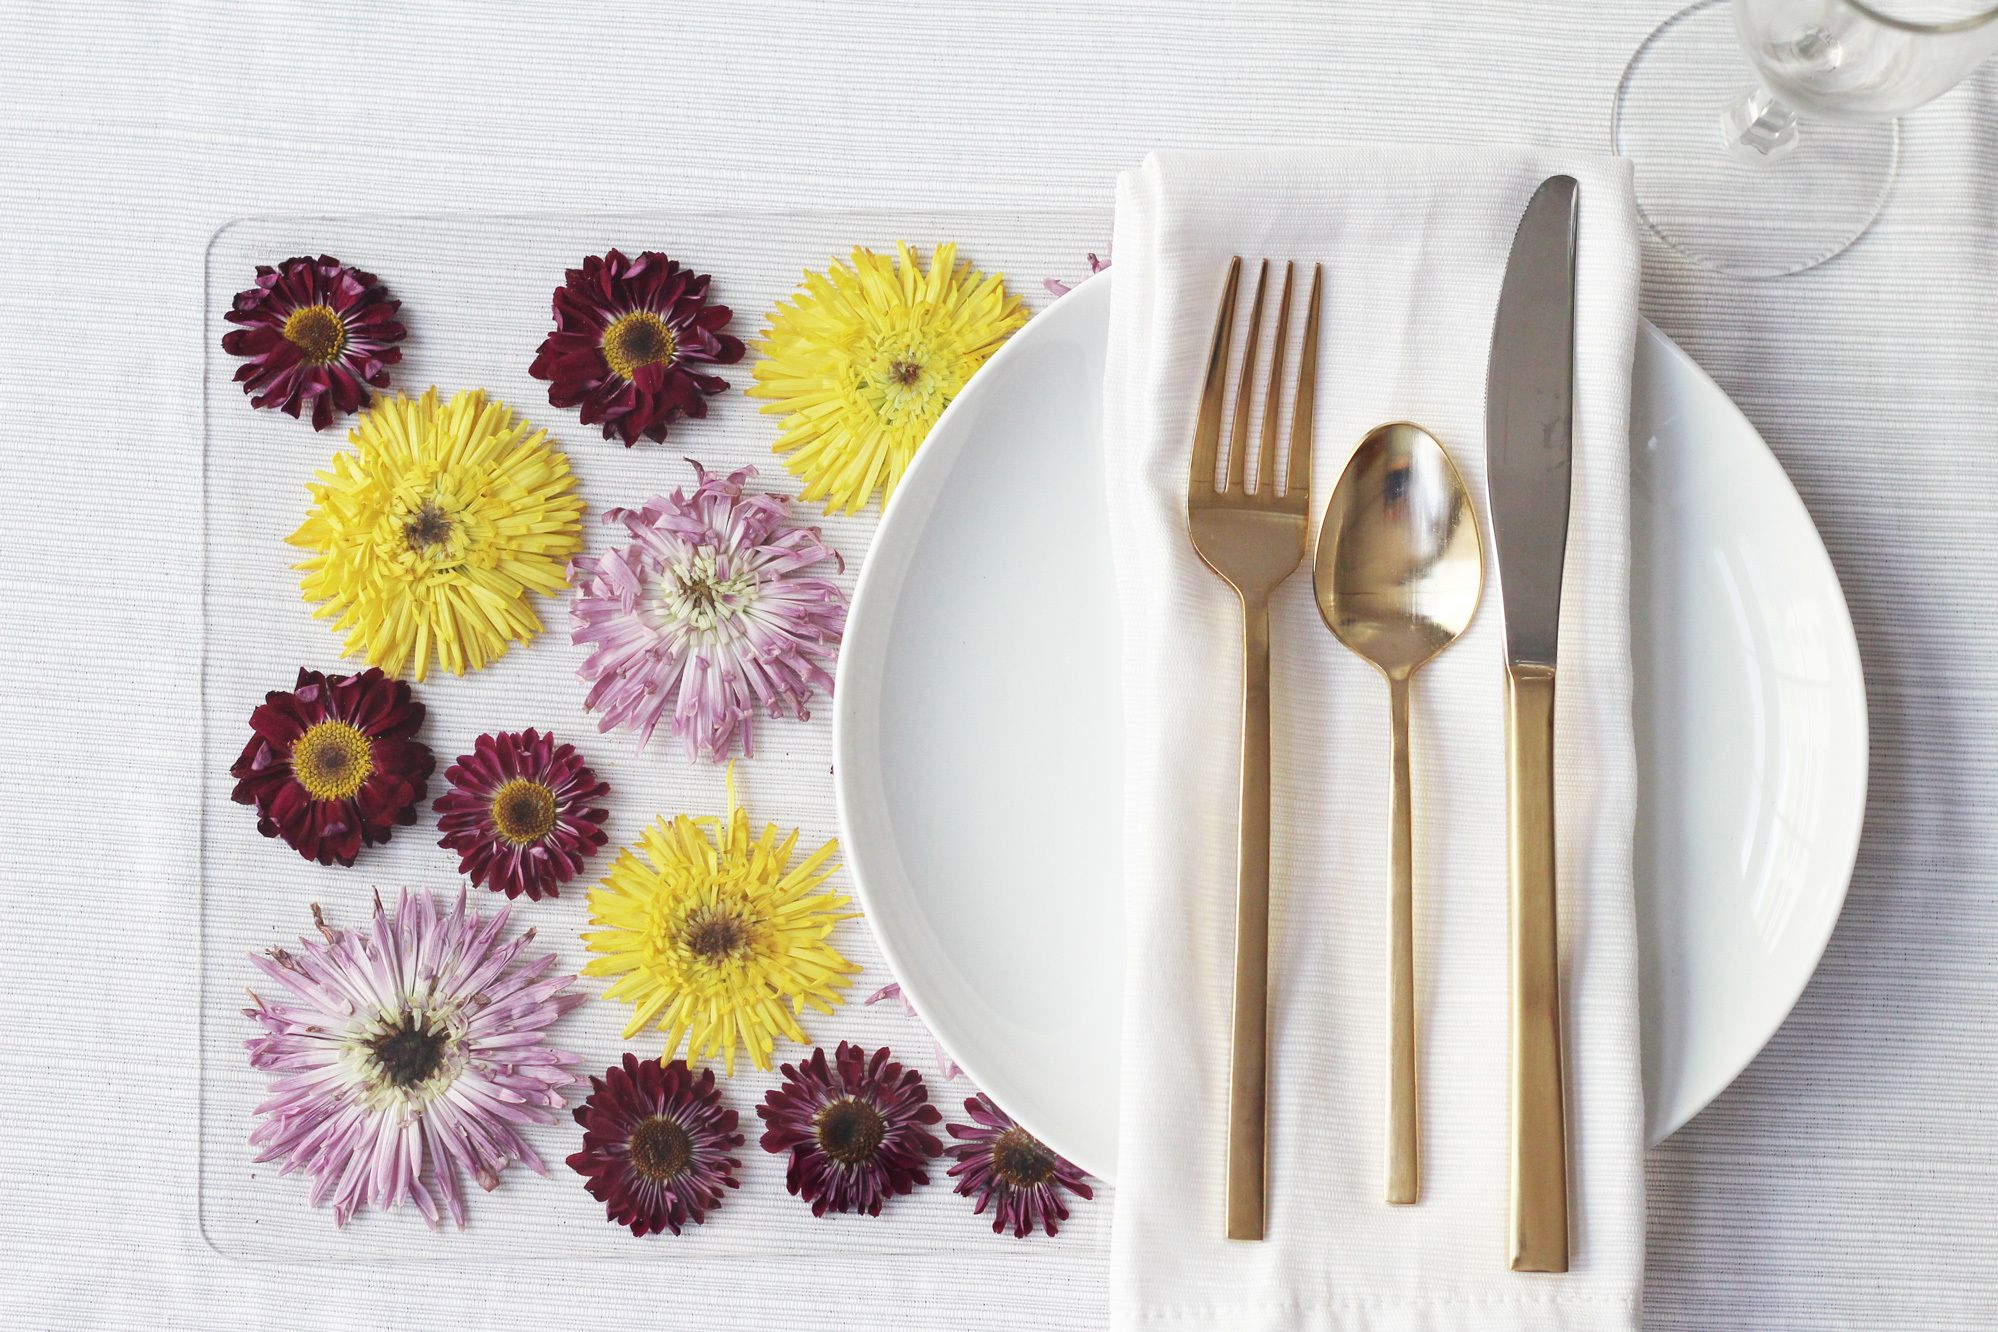 DIY Pressed Flower Placemats | Flower placemats, Pressed flowers diy